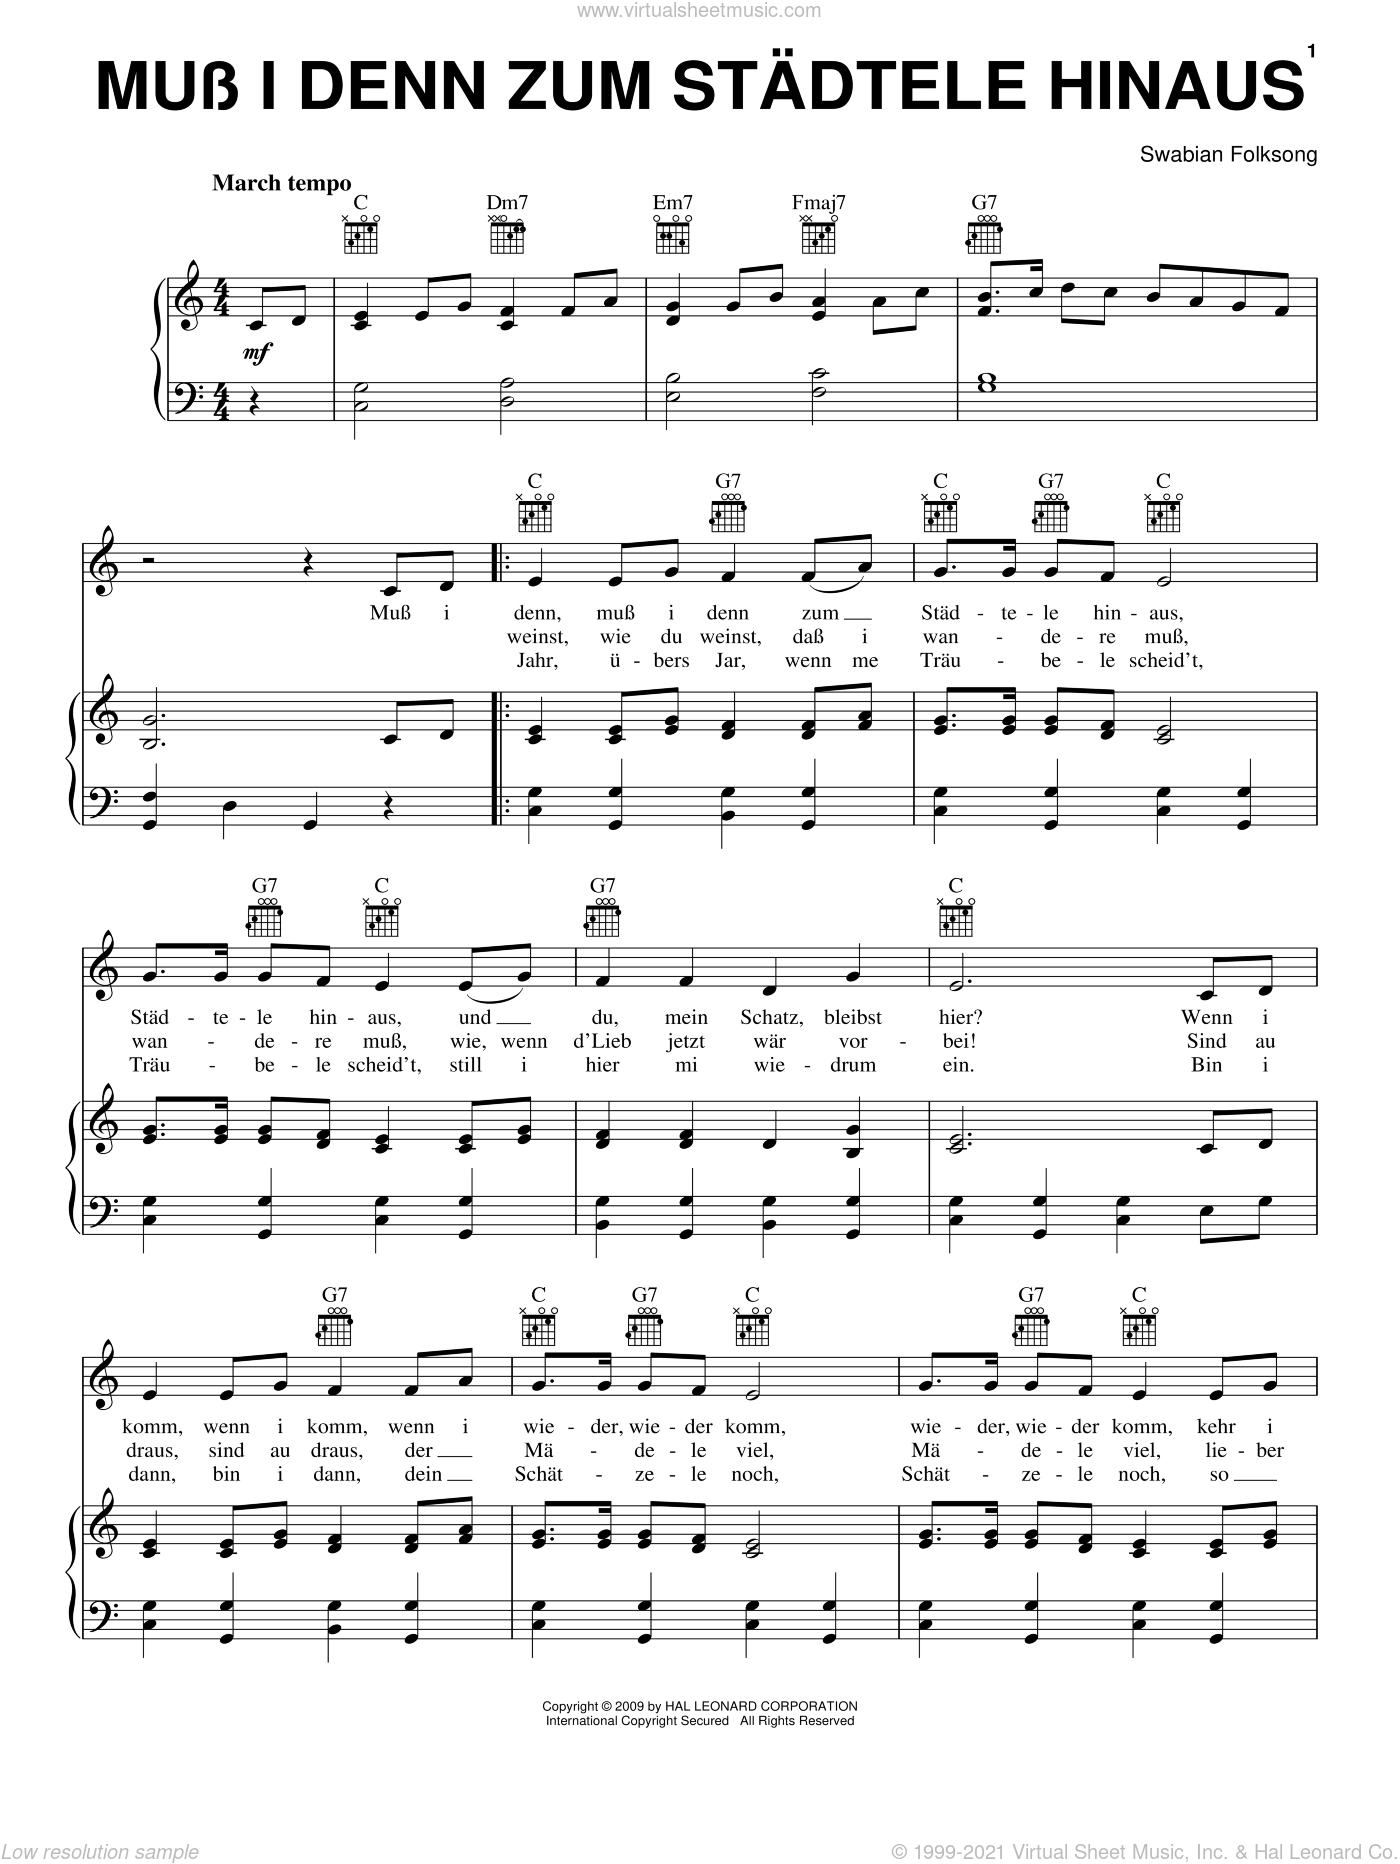 Muss I Denn Zum Stadtele Hinaus sheet music for voice, piano or guitar, intermediate voice, piano or guitar. Score Image Preview.